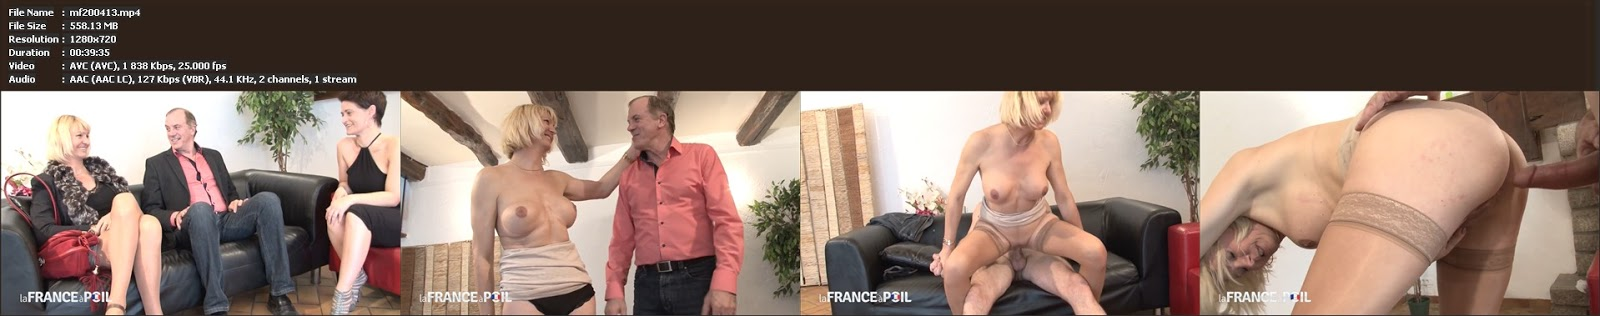 matur archive franch anal